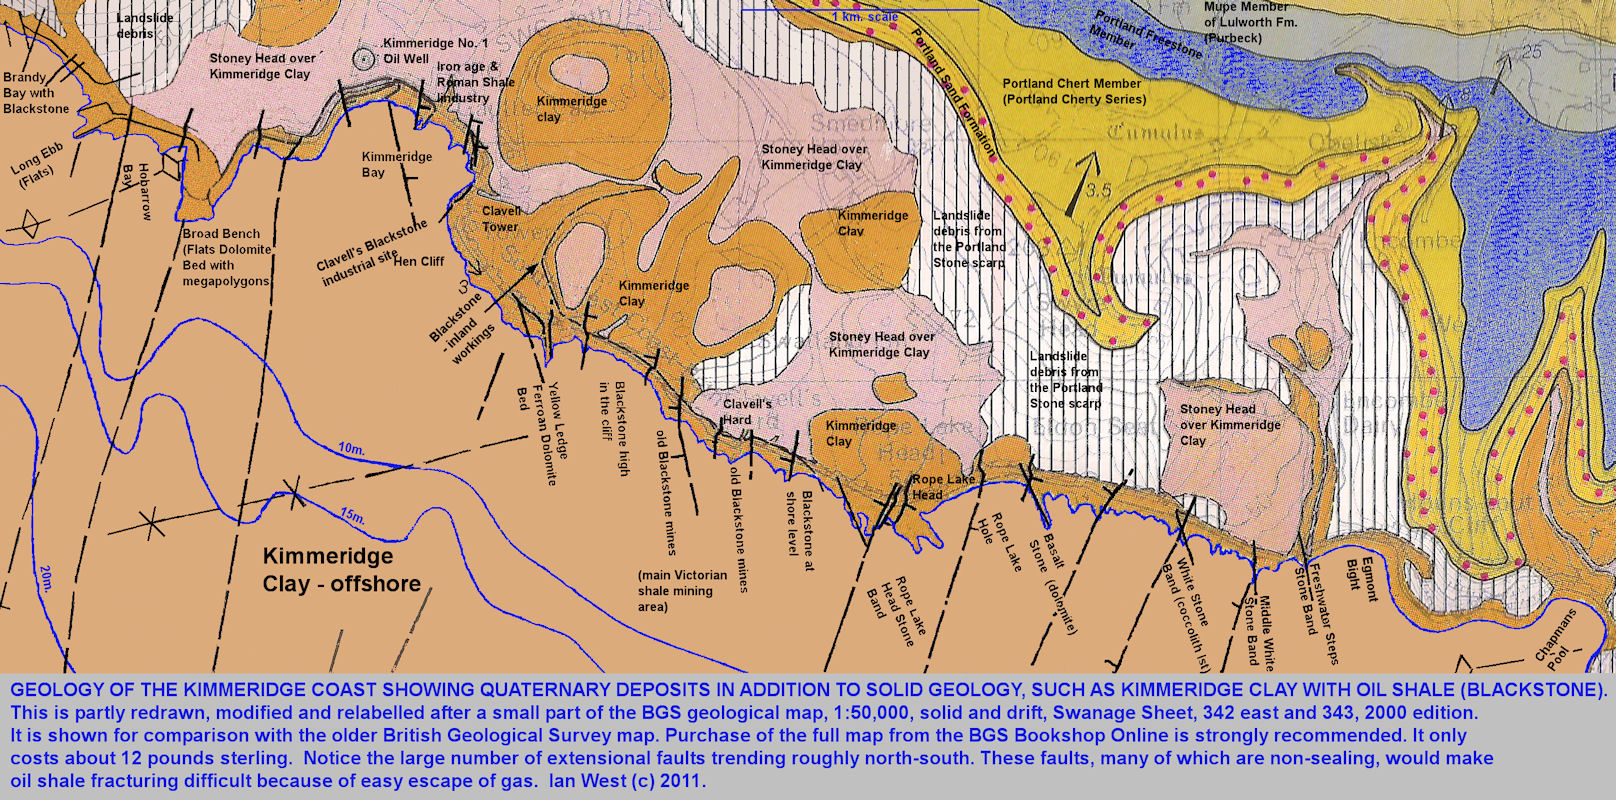 Geology of the Kimmeridge coast, Dorset, partly redrawn after a modern geological map